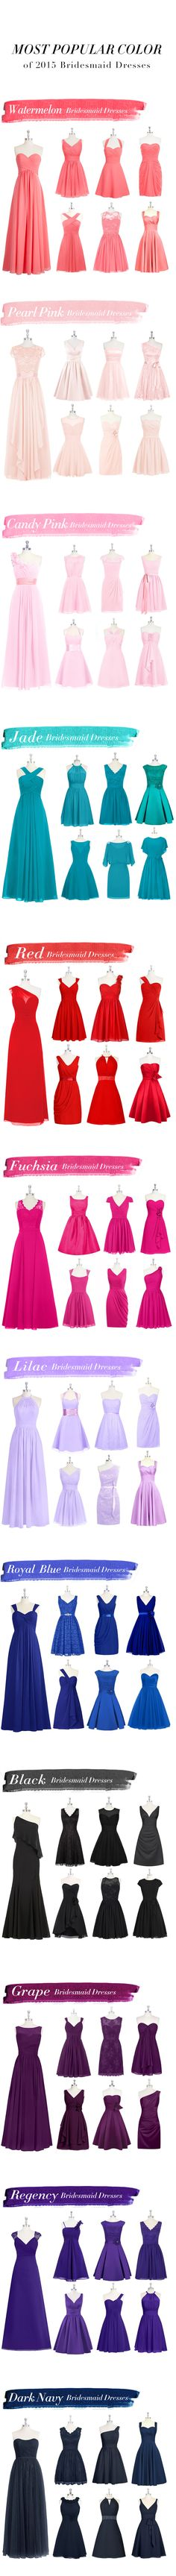 Azazie is the online destination for special occasion dresses. Find the perfect bridesmaid dresses, with over 300 styles in 32 colors on AZAZIE. HAVE MODEST DRESSES Wedding Bridesmaids, Bridesmaid Dresses, Wedding Dresses, Azazie Bridesmaid, Sequin Bridesmaid, Bridesmaid Ideas, Wrap Dresses, Wedding Bouquets, Pretty Dresses